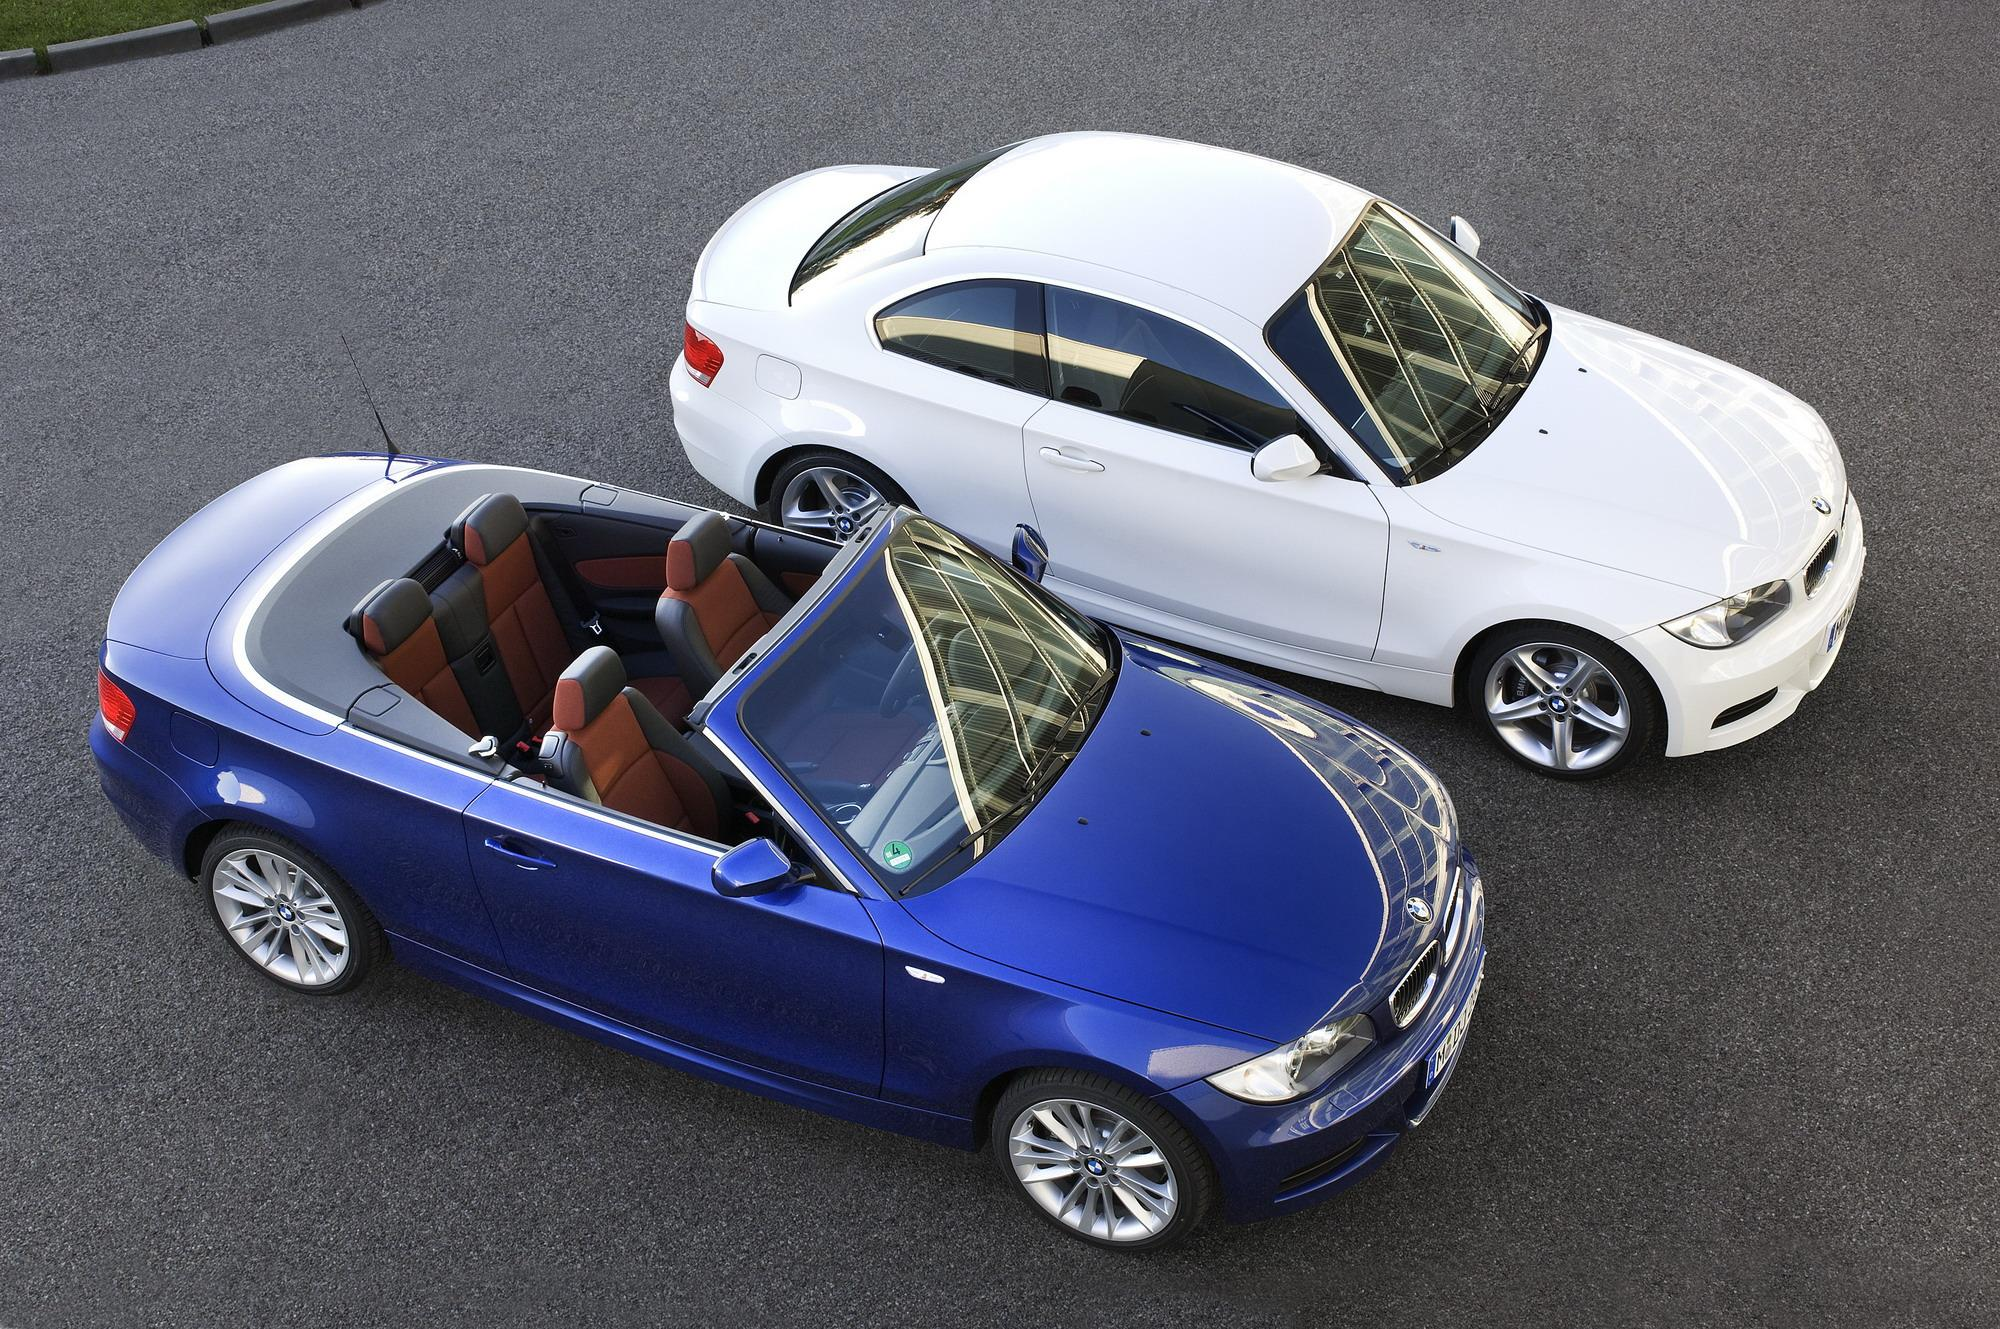 2010 BMW 135i Coupe And Convertible | Top Speed